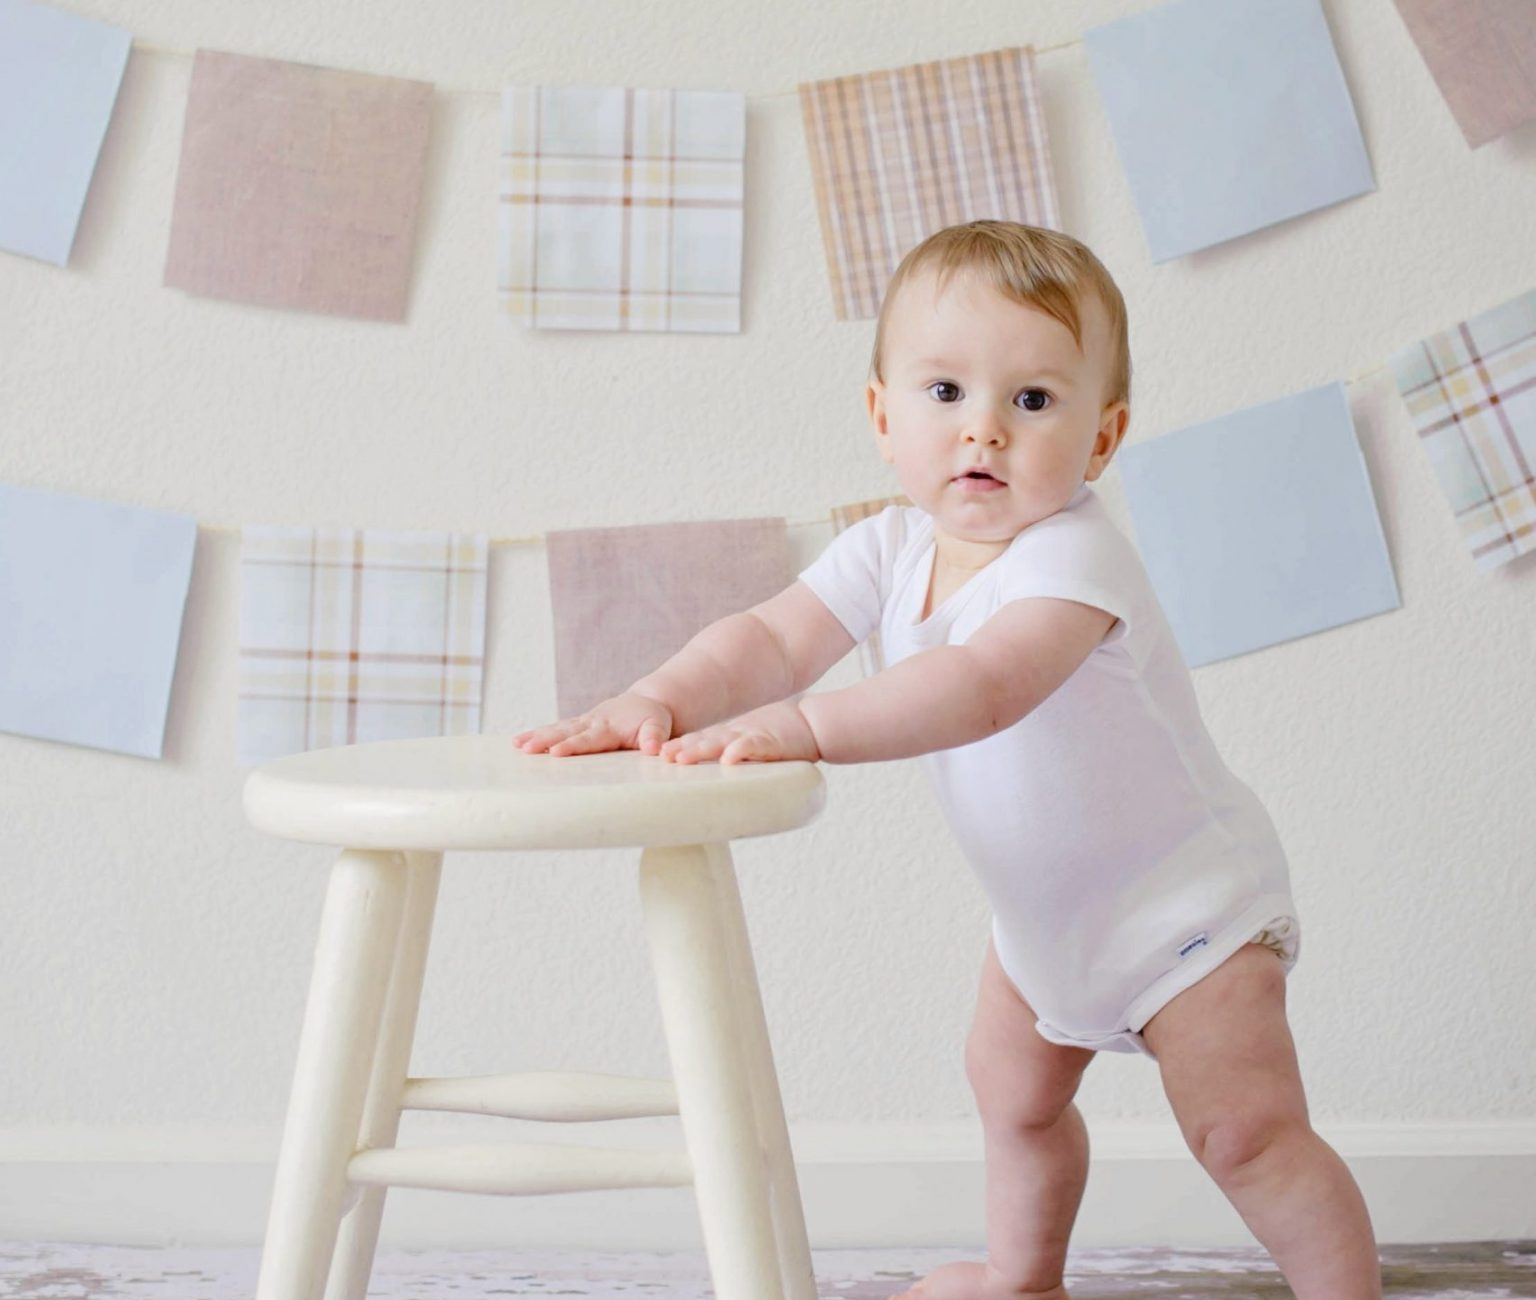 adorable-baby-blur-chair-459976